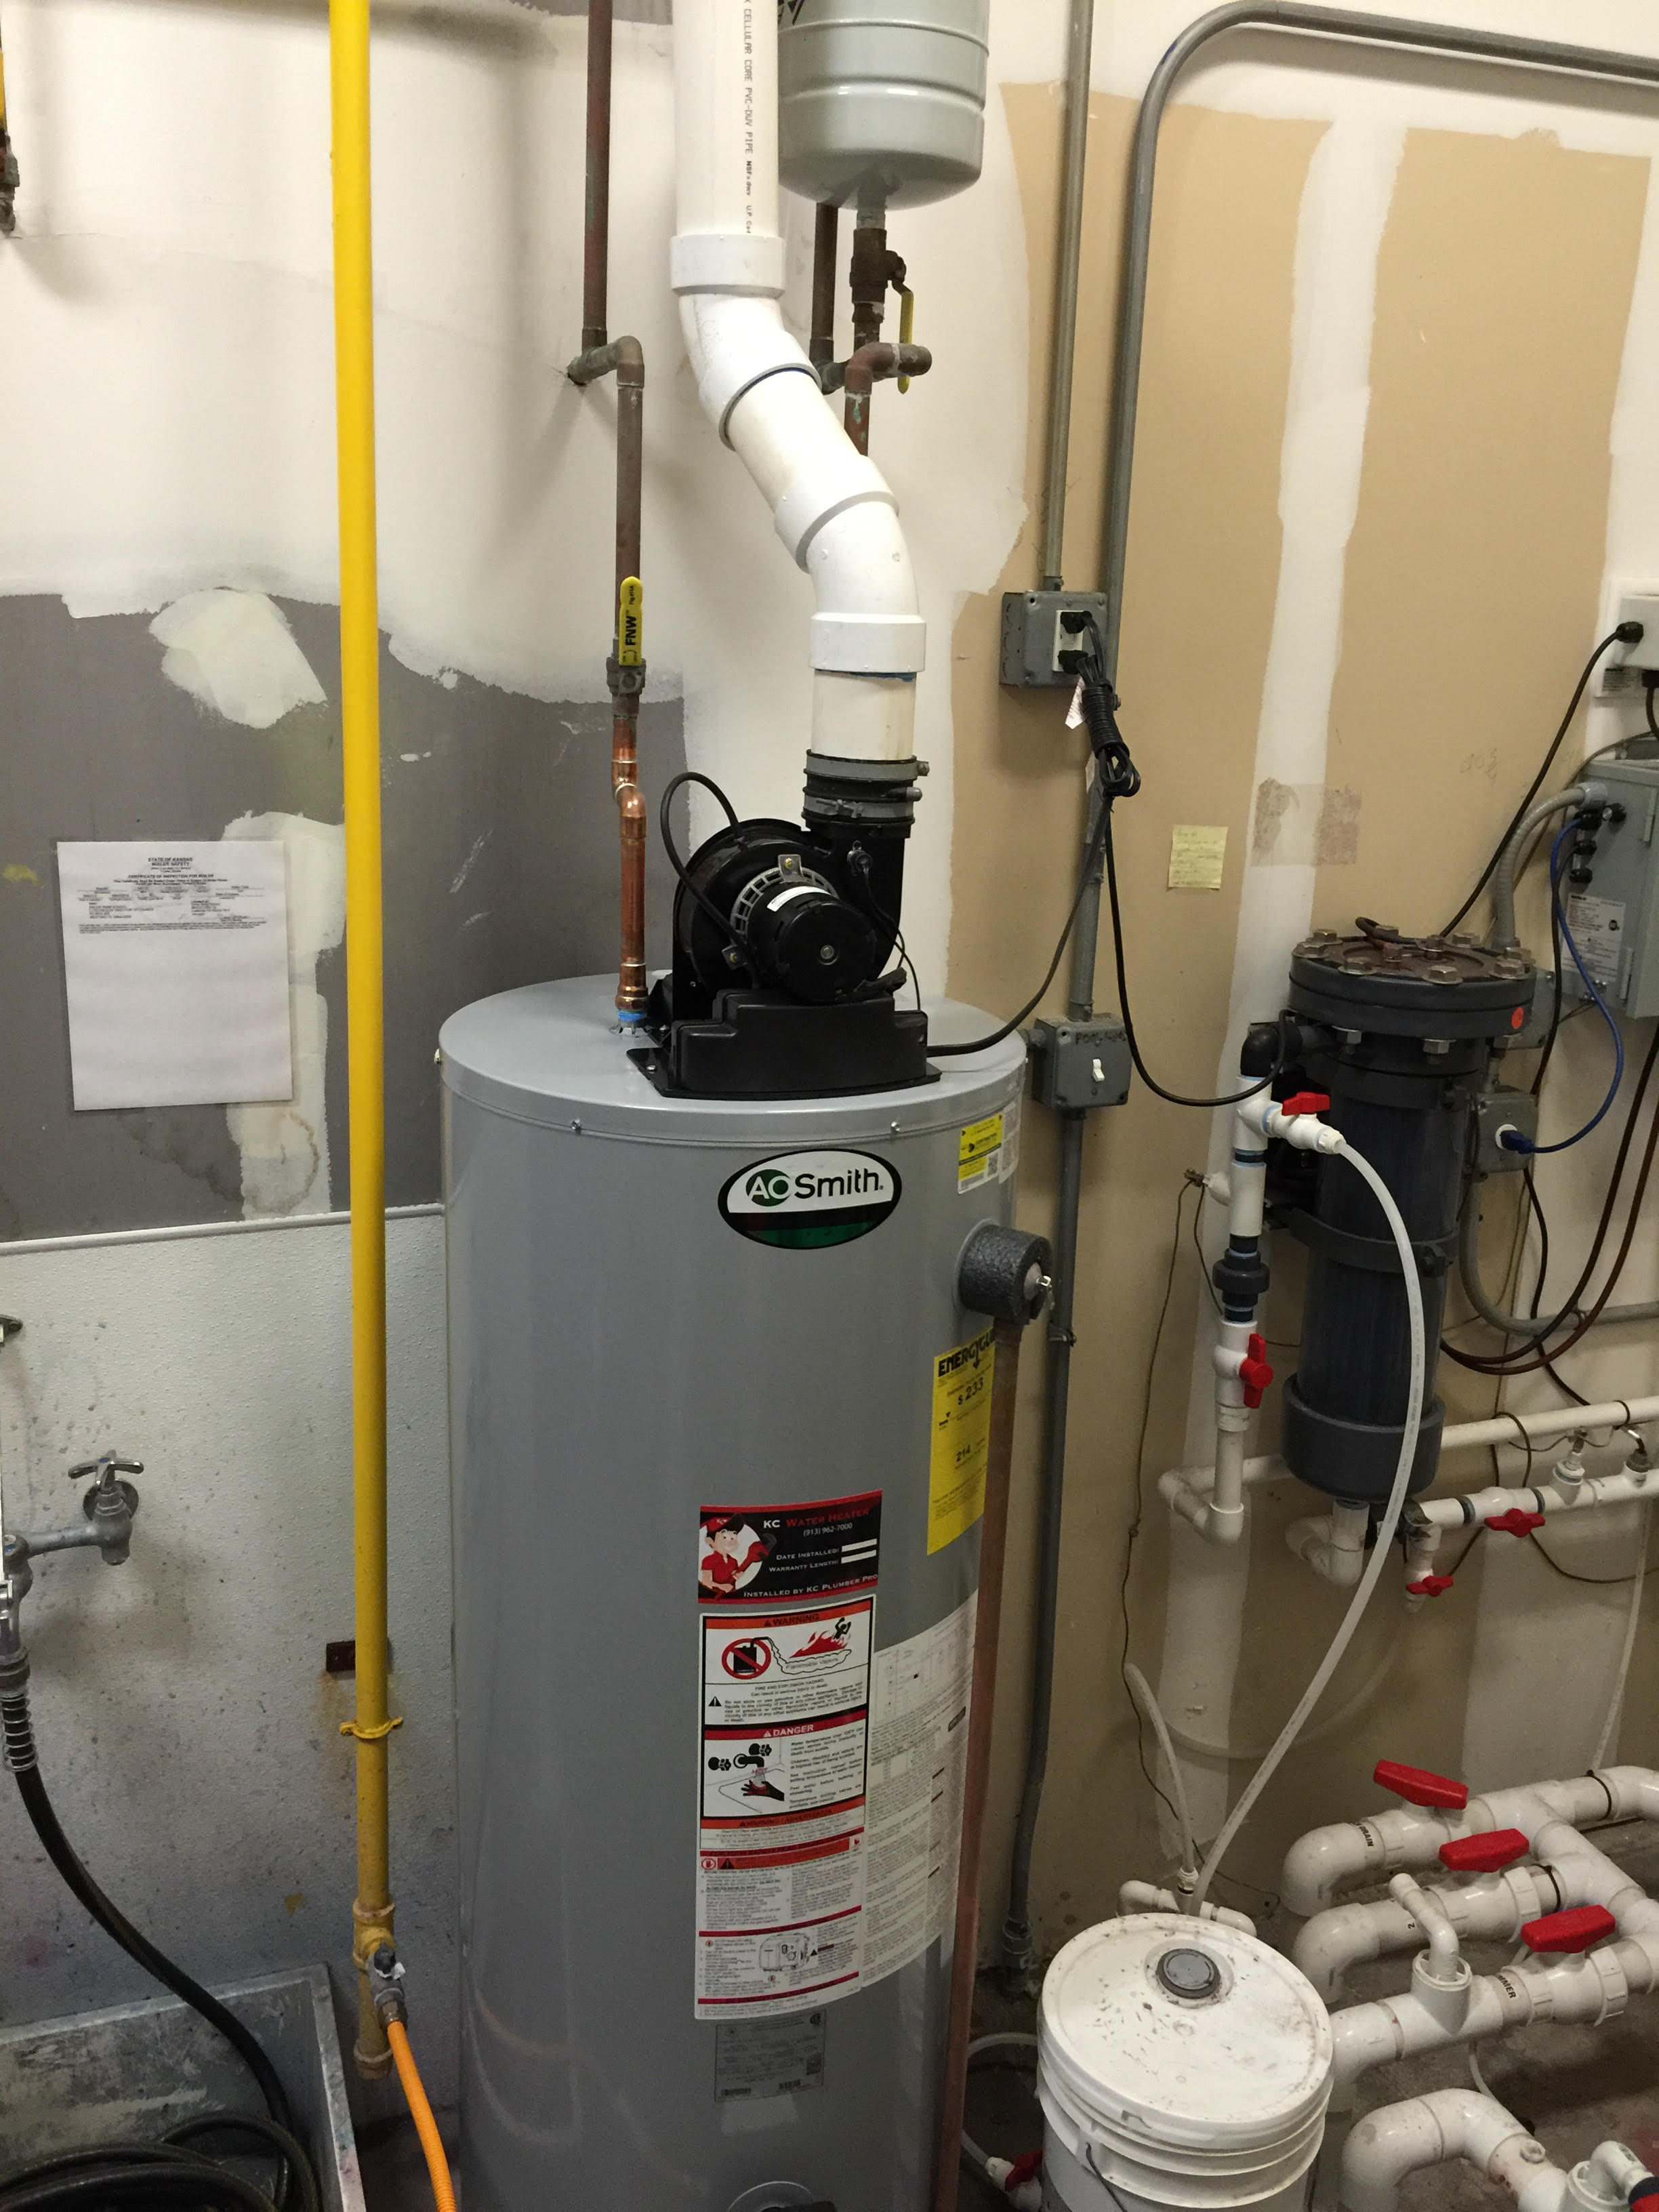 How to vent a hot water heater - Gpvt 50 200 Power Vent Leawood Kansas